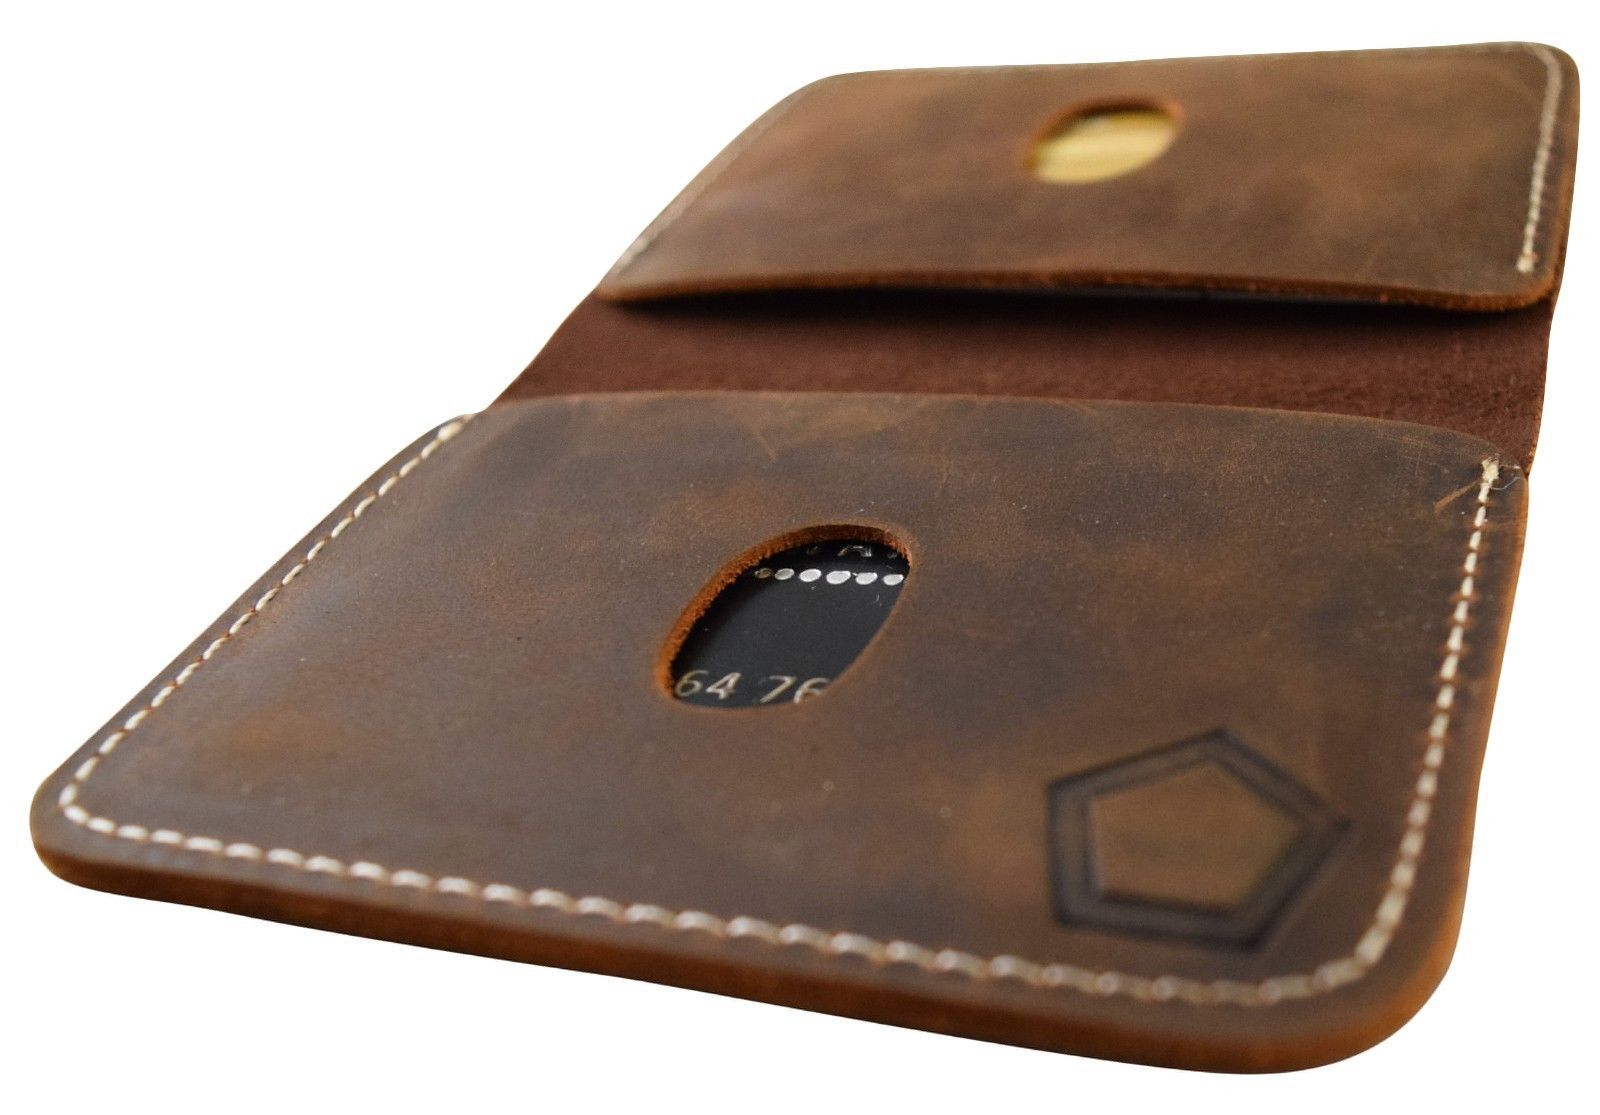 KNOXX minimalist rugged leather mens wallet - The Last Wallet You Will Ever Need